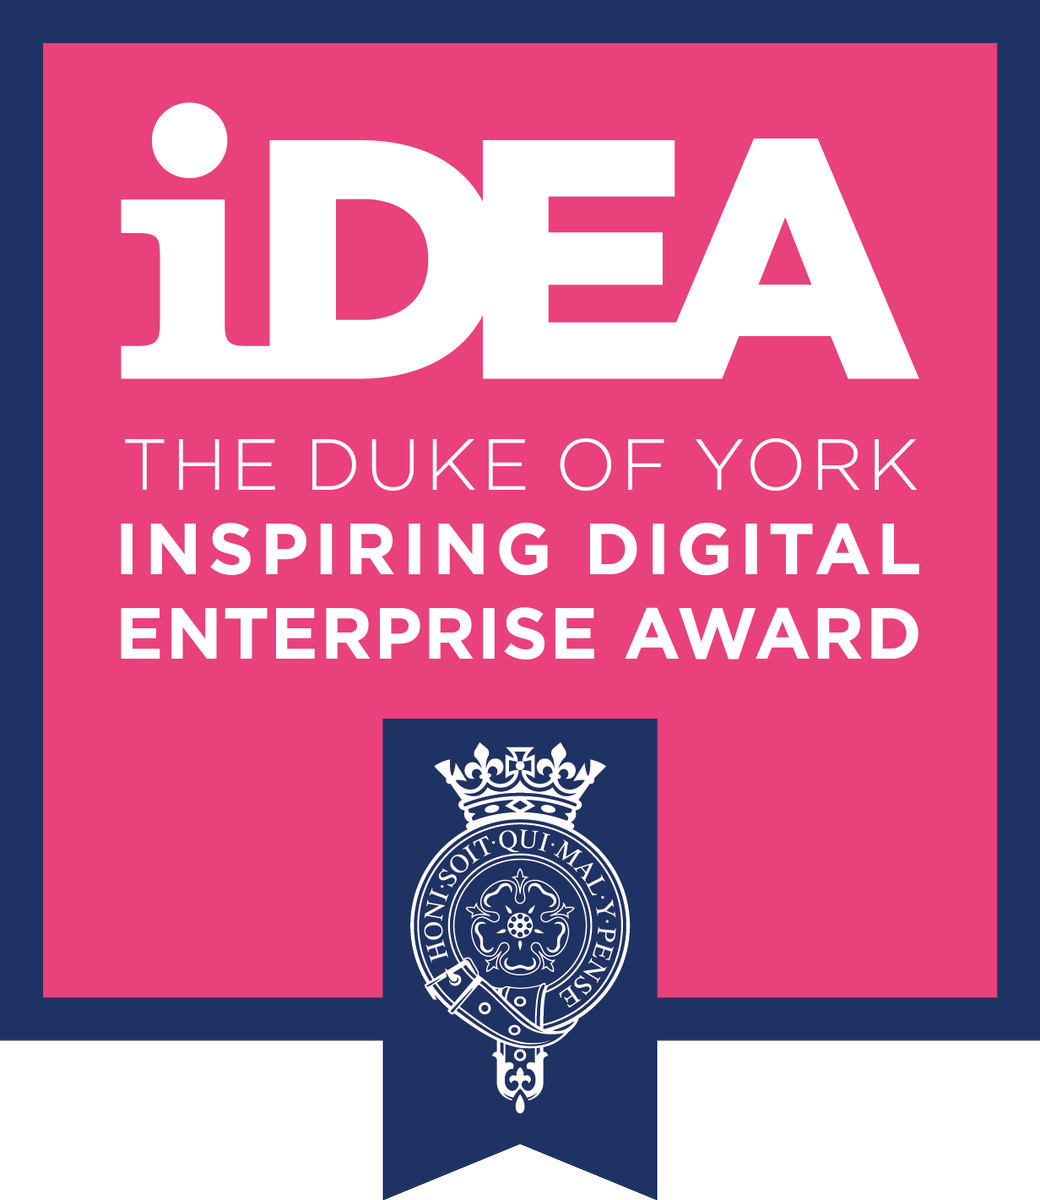 Are you a #smallbiz owner who needs to learn how to use social media to find routes to market? Or perhaps youd like some tips for making the most of your team? @idea_award also includes useful stuff like making websites, using graphic design & understanding GDPR #smallidea